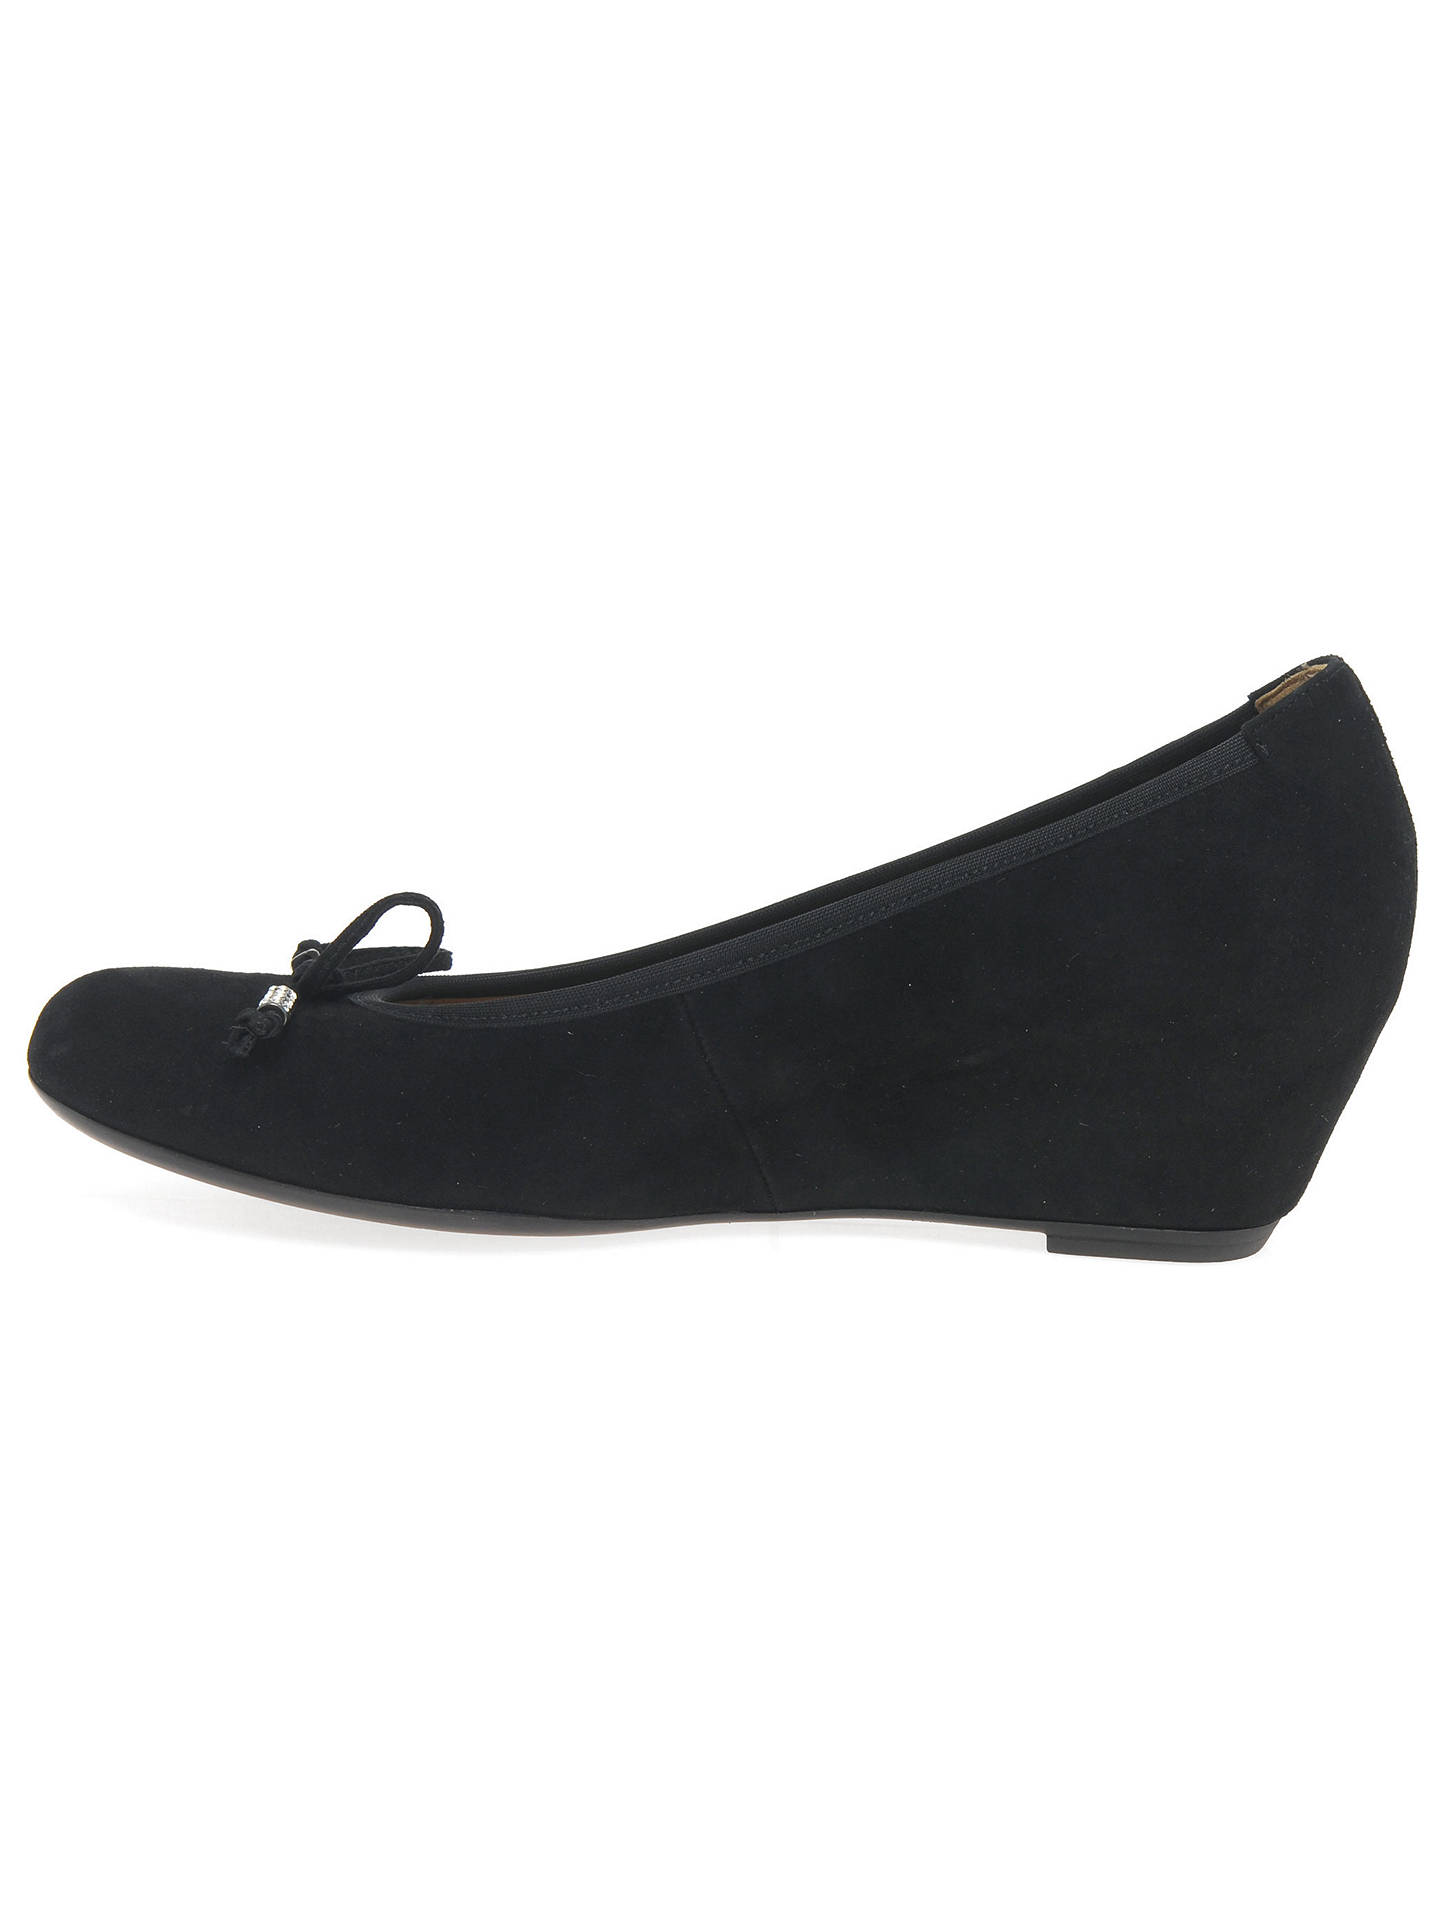 cb76f067b4e Gabor Alvin Concealed Wedge Heel Court Shoes at John Lewis   Partners